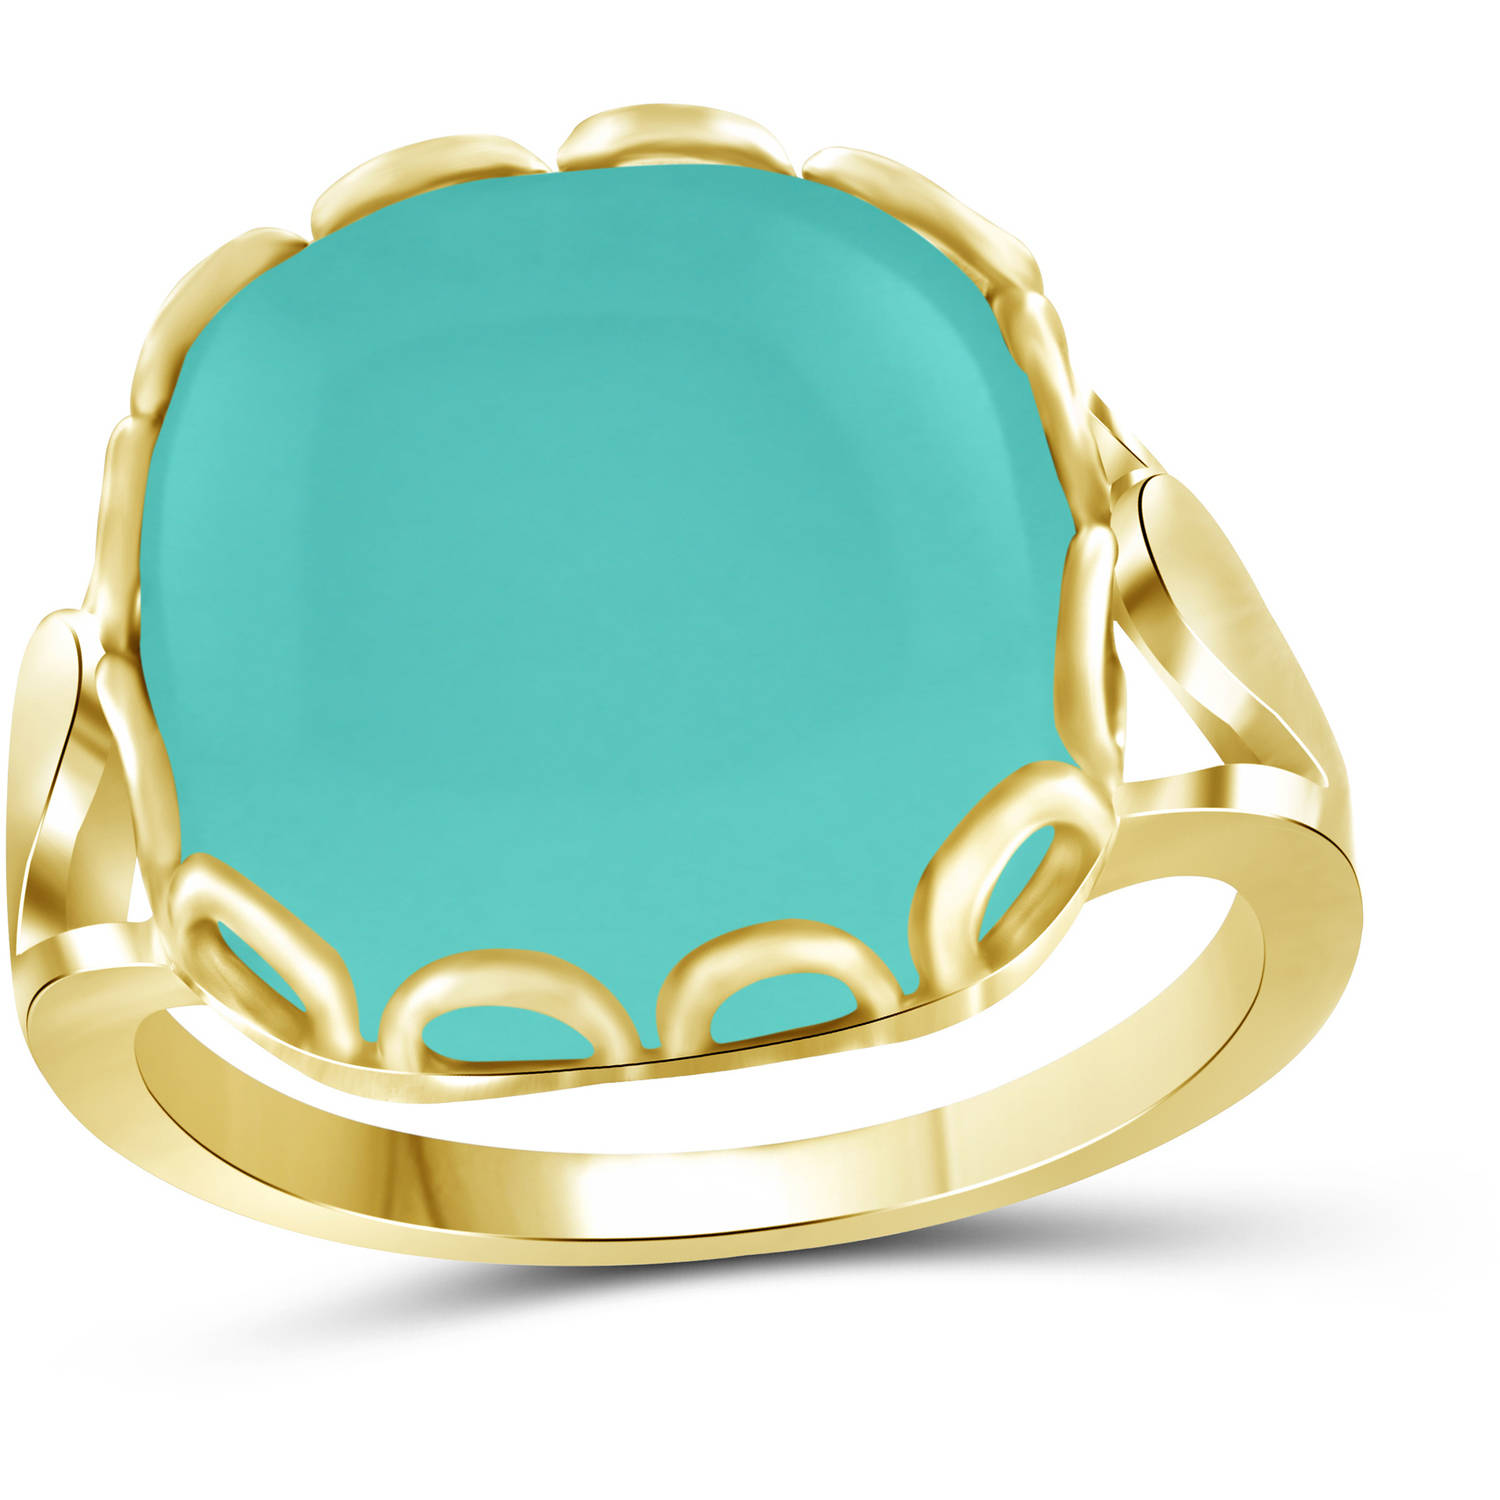 JewelersClub 10-3 4 Carat T.G.W. Chalcedony 14kt Gold over Silver Fashion Ring by JewelersClub